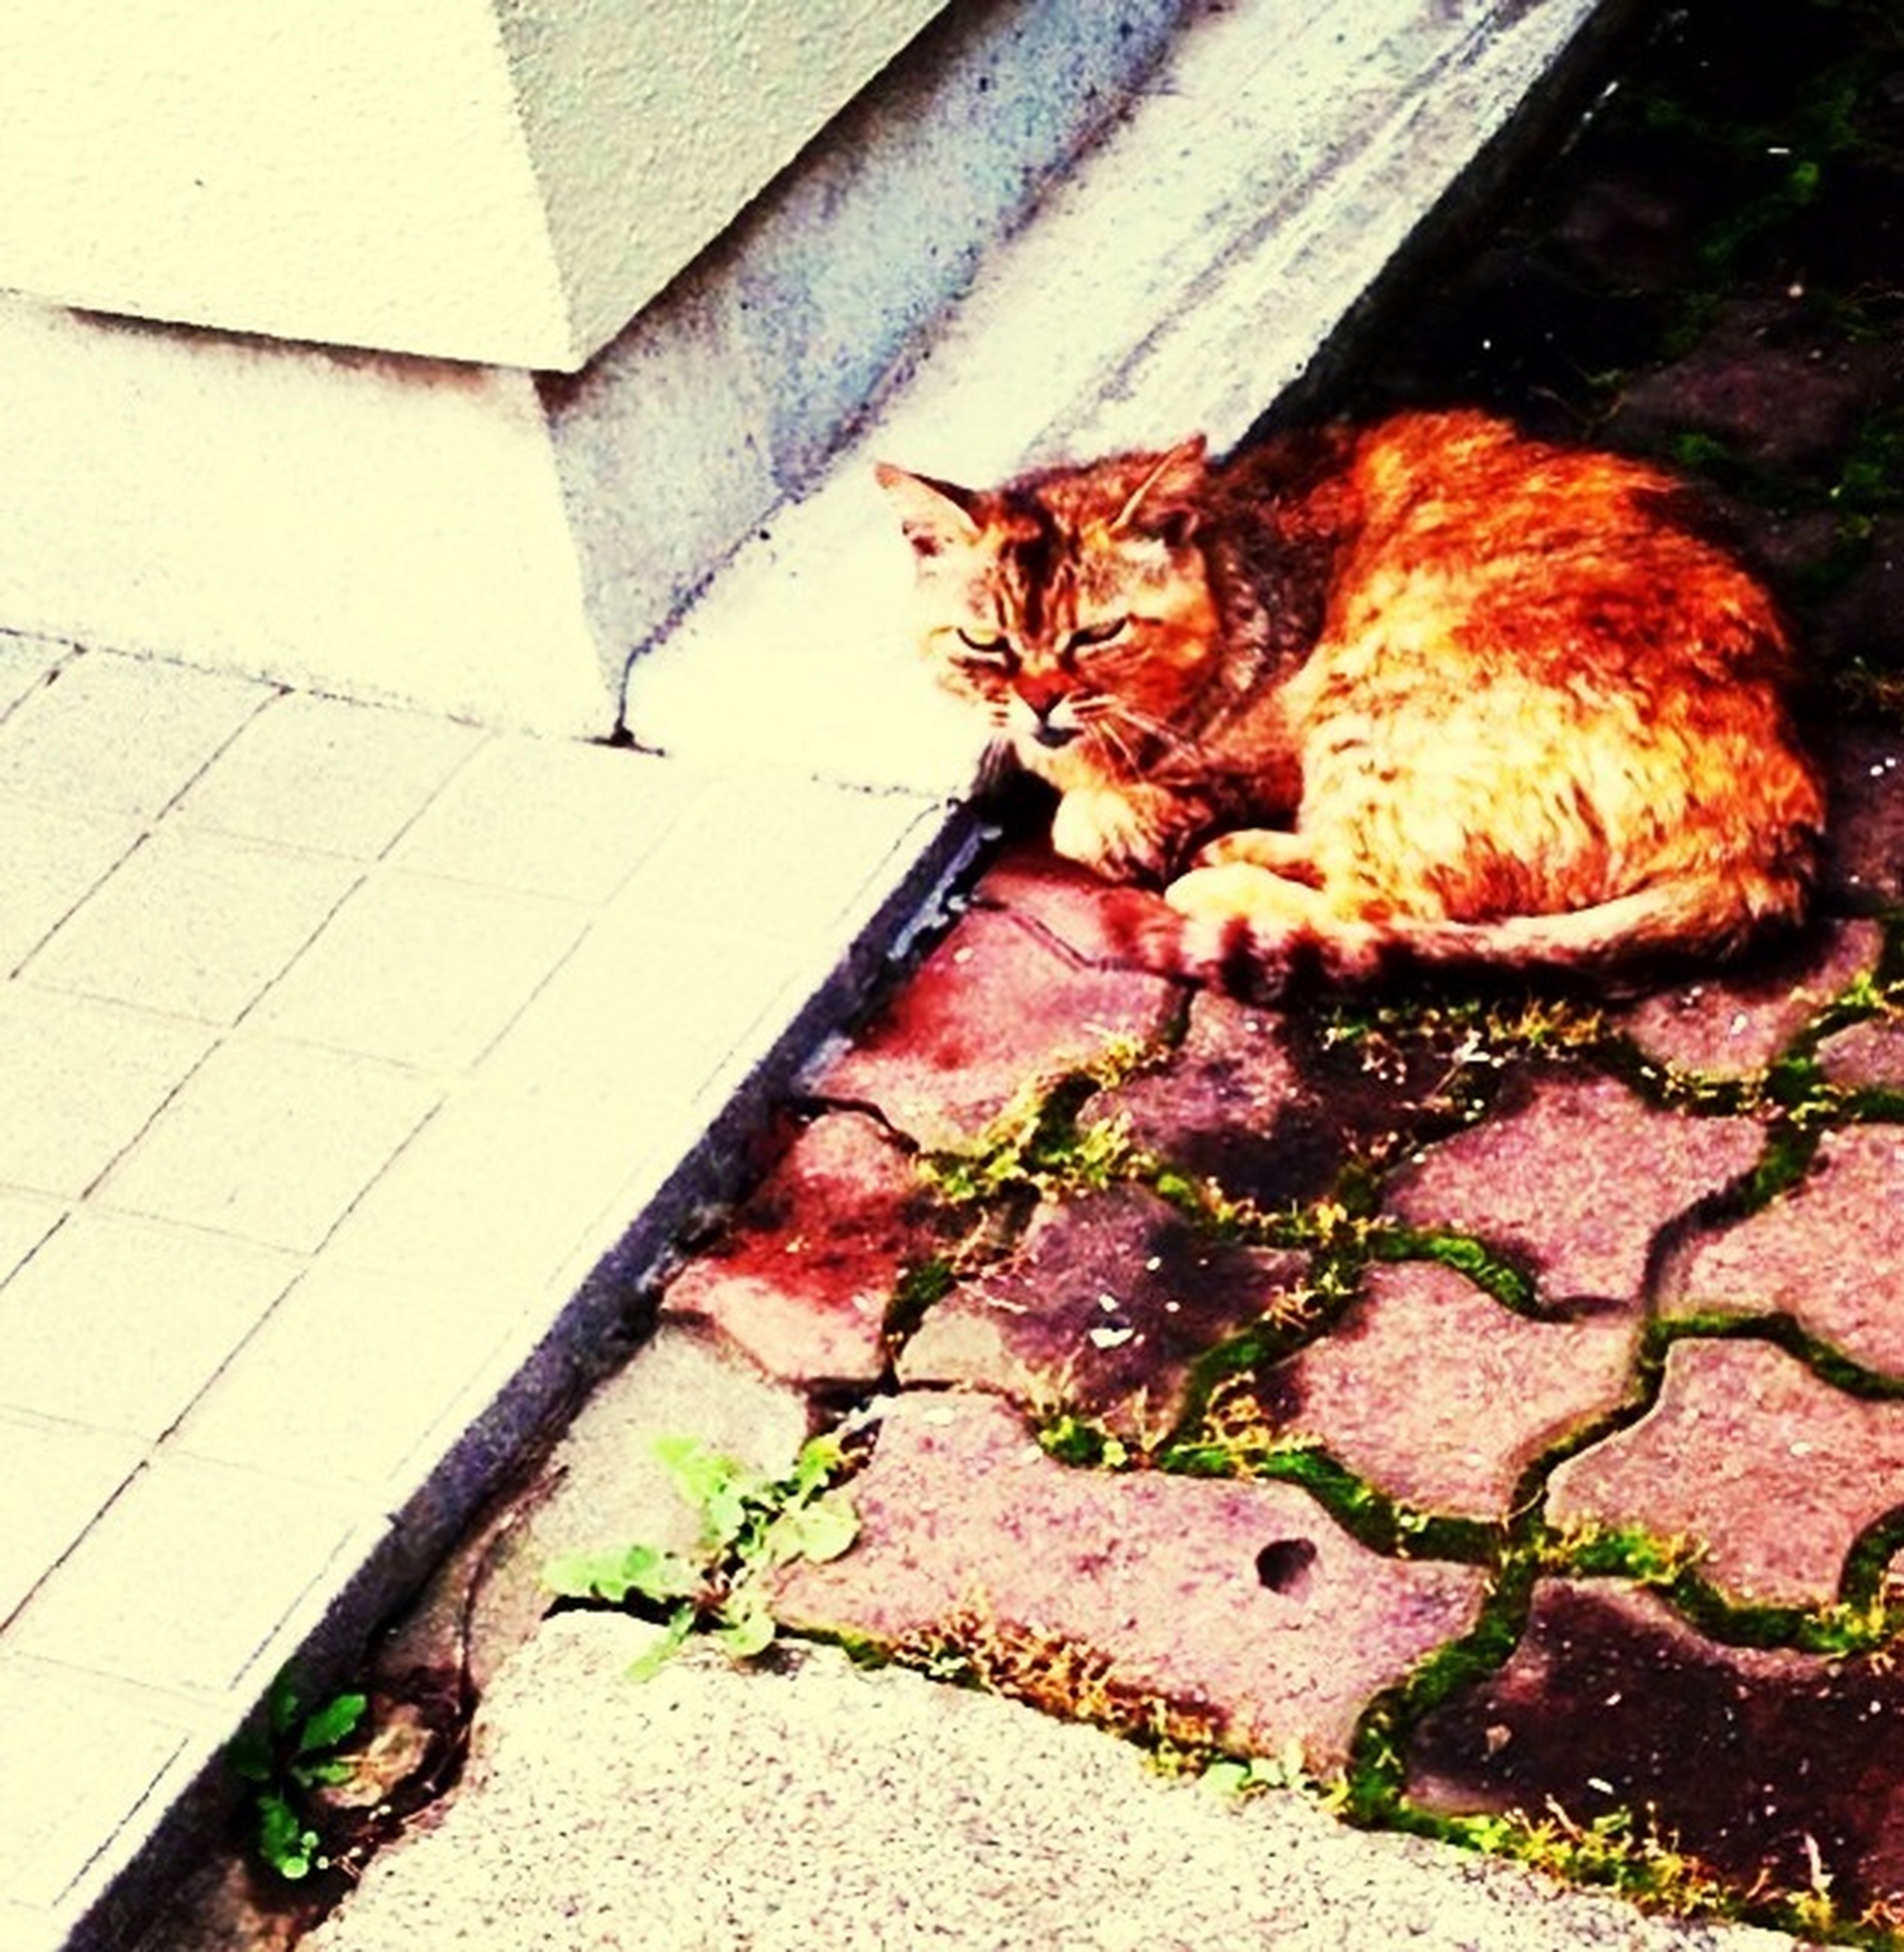 domestic animals, domestic cat, wall - building feature, pets, cat, high angle view, built structure, animal themes, sunlight, architecture, mammal, no people, day, one animal, leaf, outdoors, building exterior, paving stone, plant, abandoned